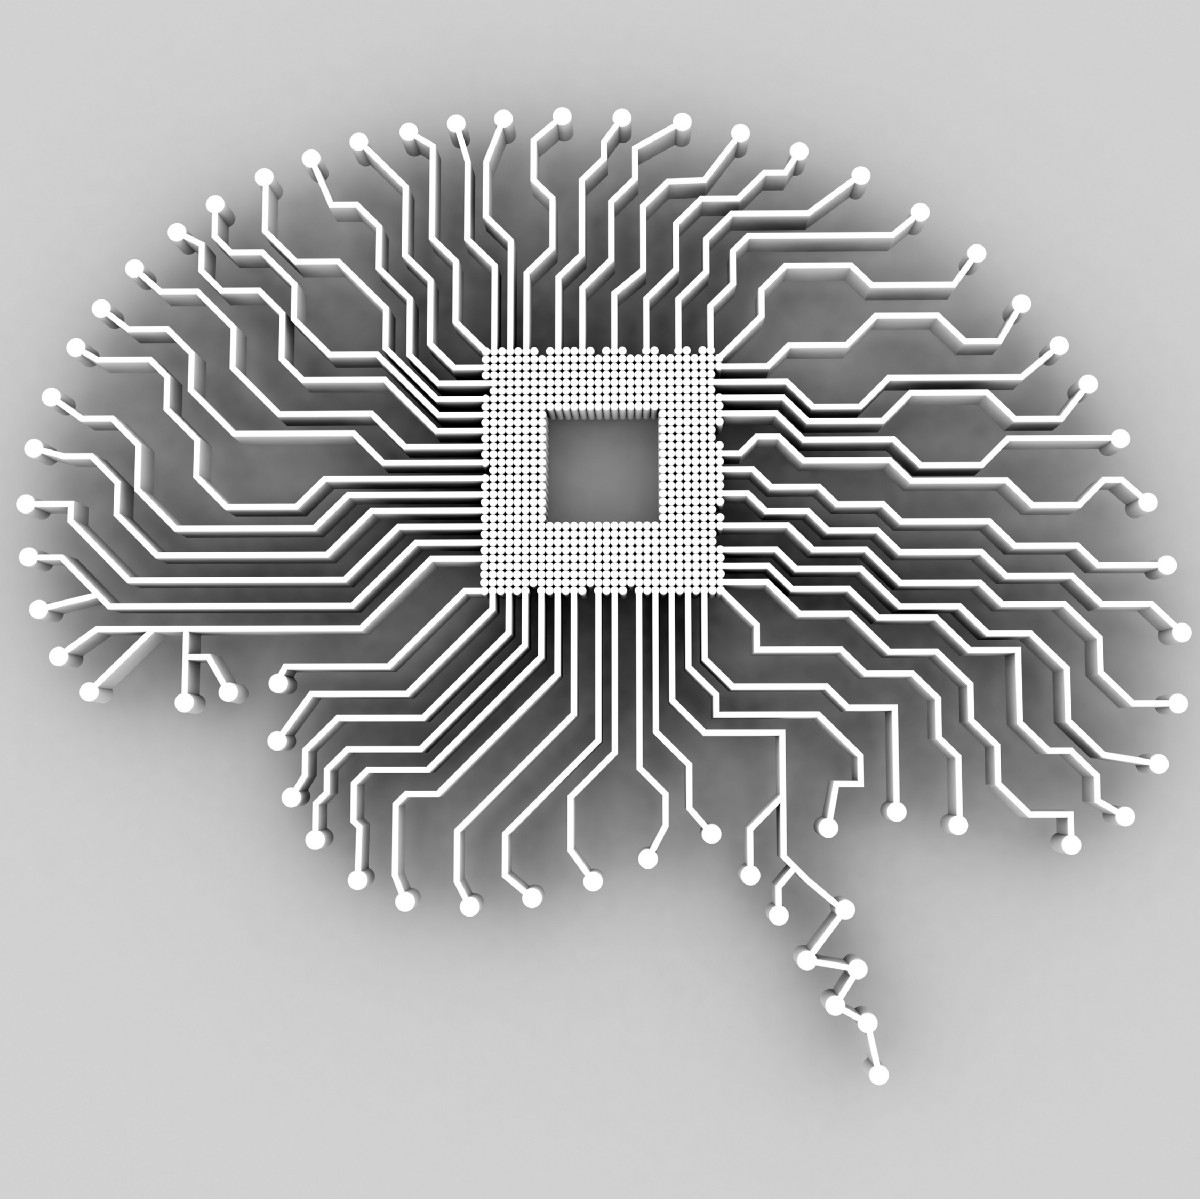 Connecting Brains to Computers Is a Shortcut to Dystopia